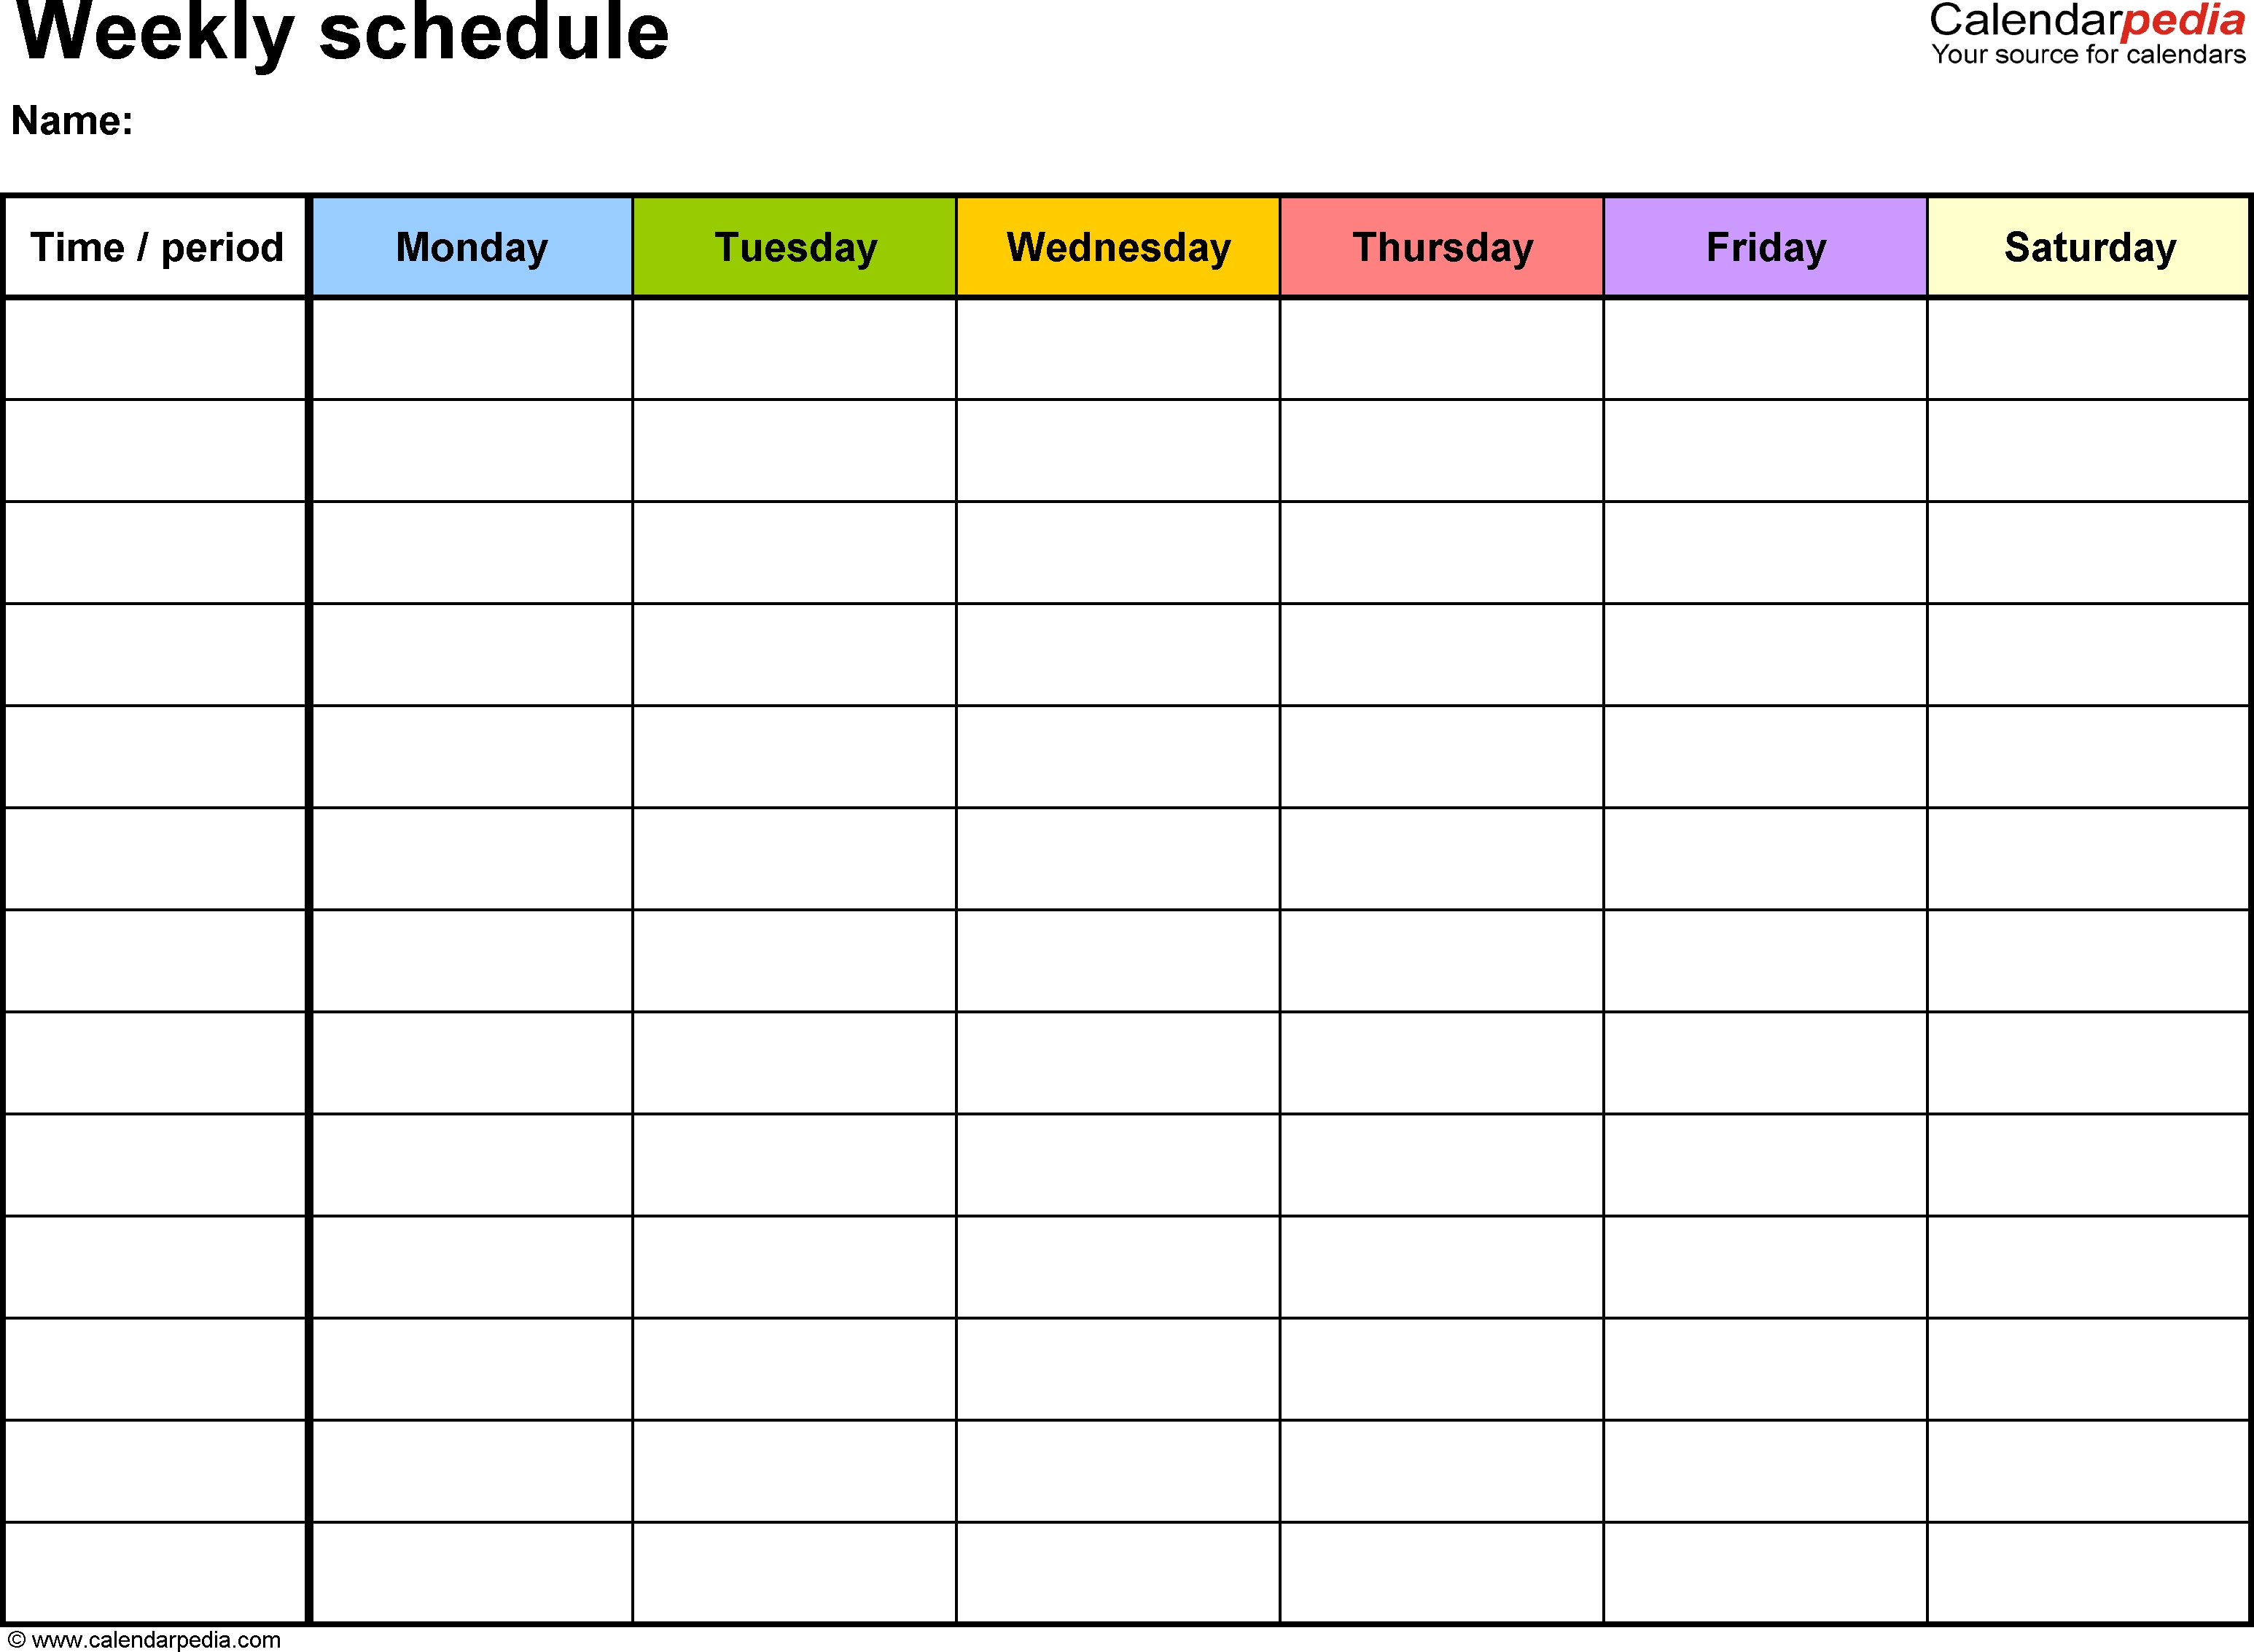 Free Weekly Schedule Templates For Word - 18 Templates pertaining to Blank Weekly Calendar To Fill In